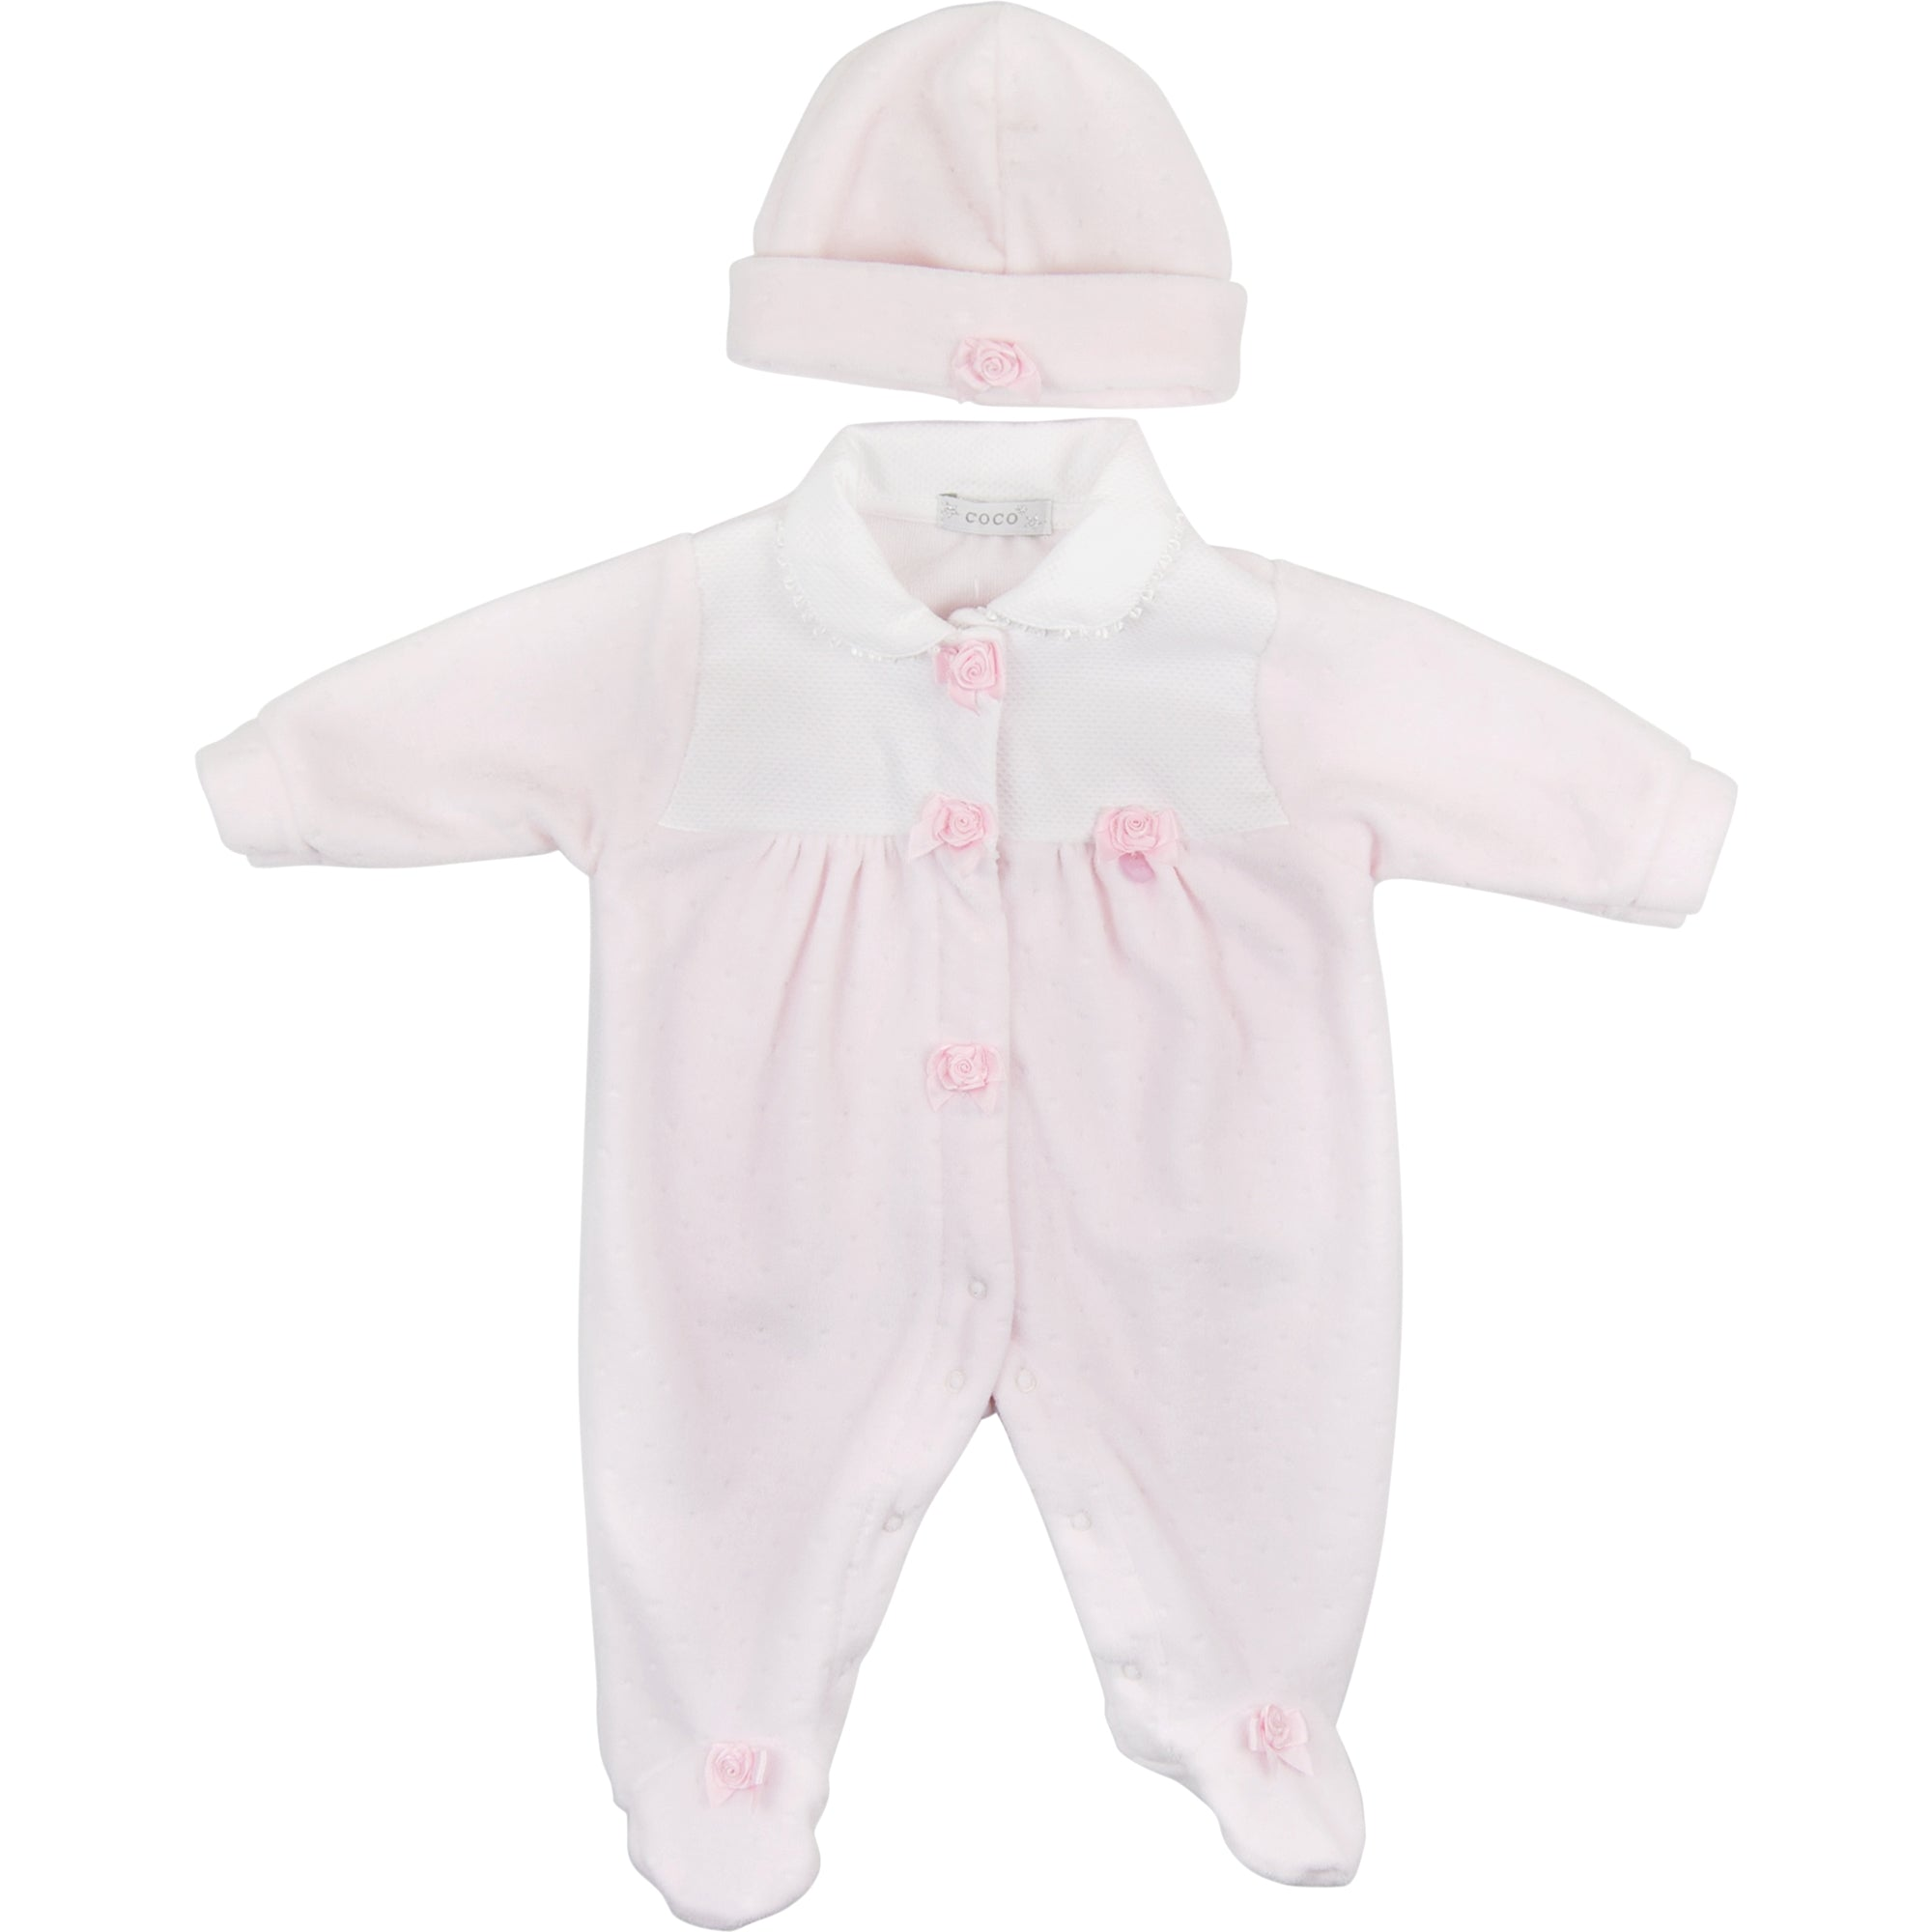 Coco Collection Roses Pink Babygrow